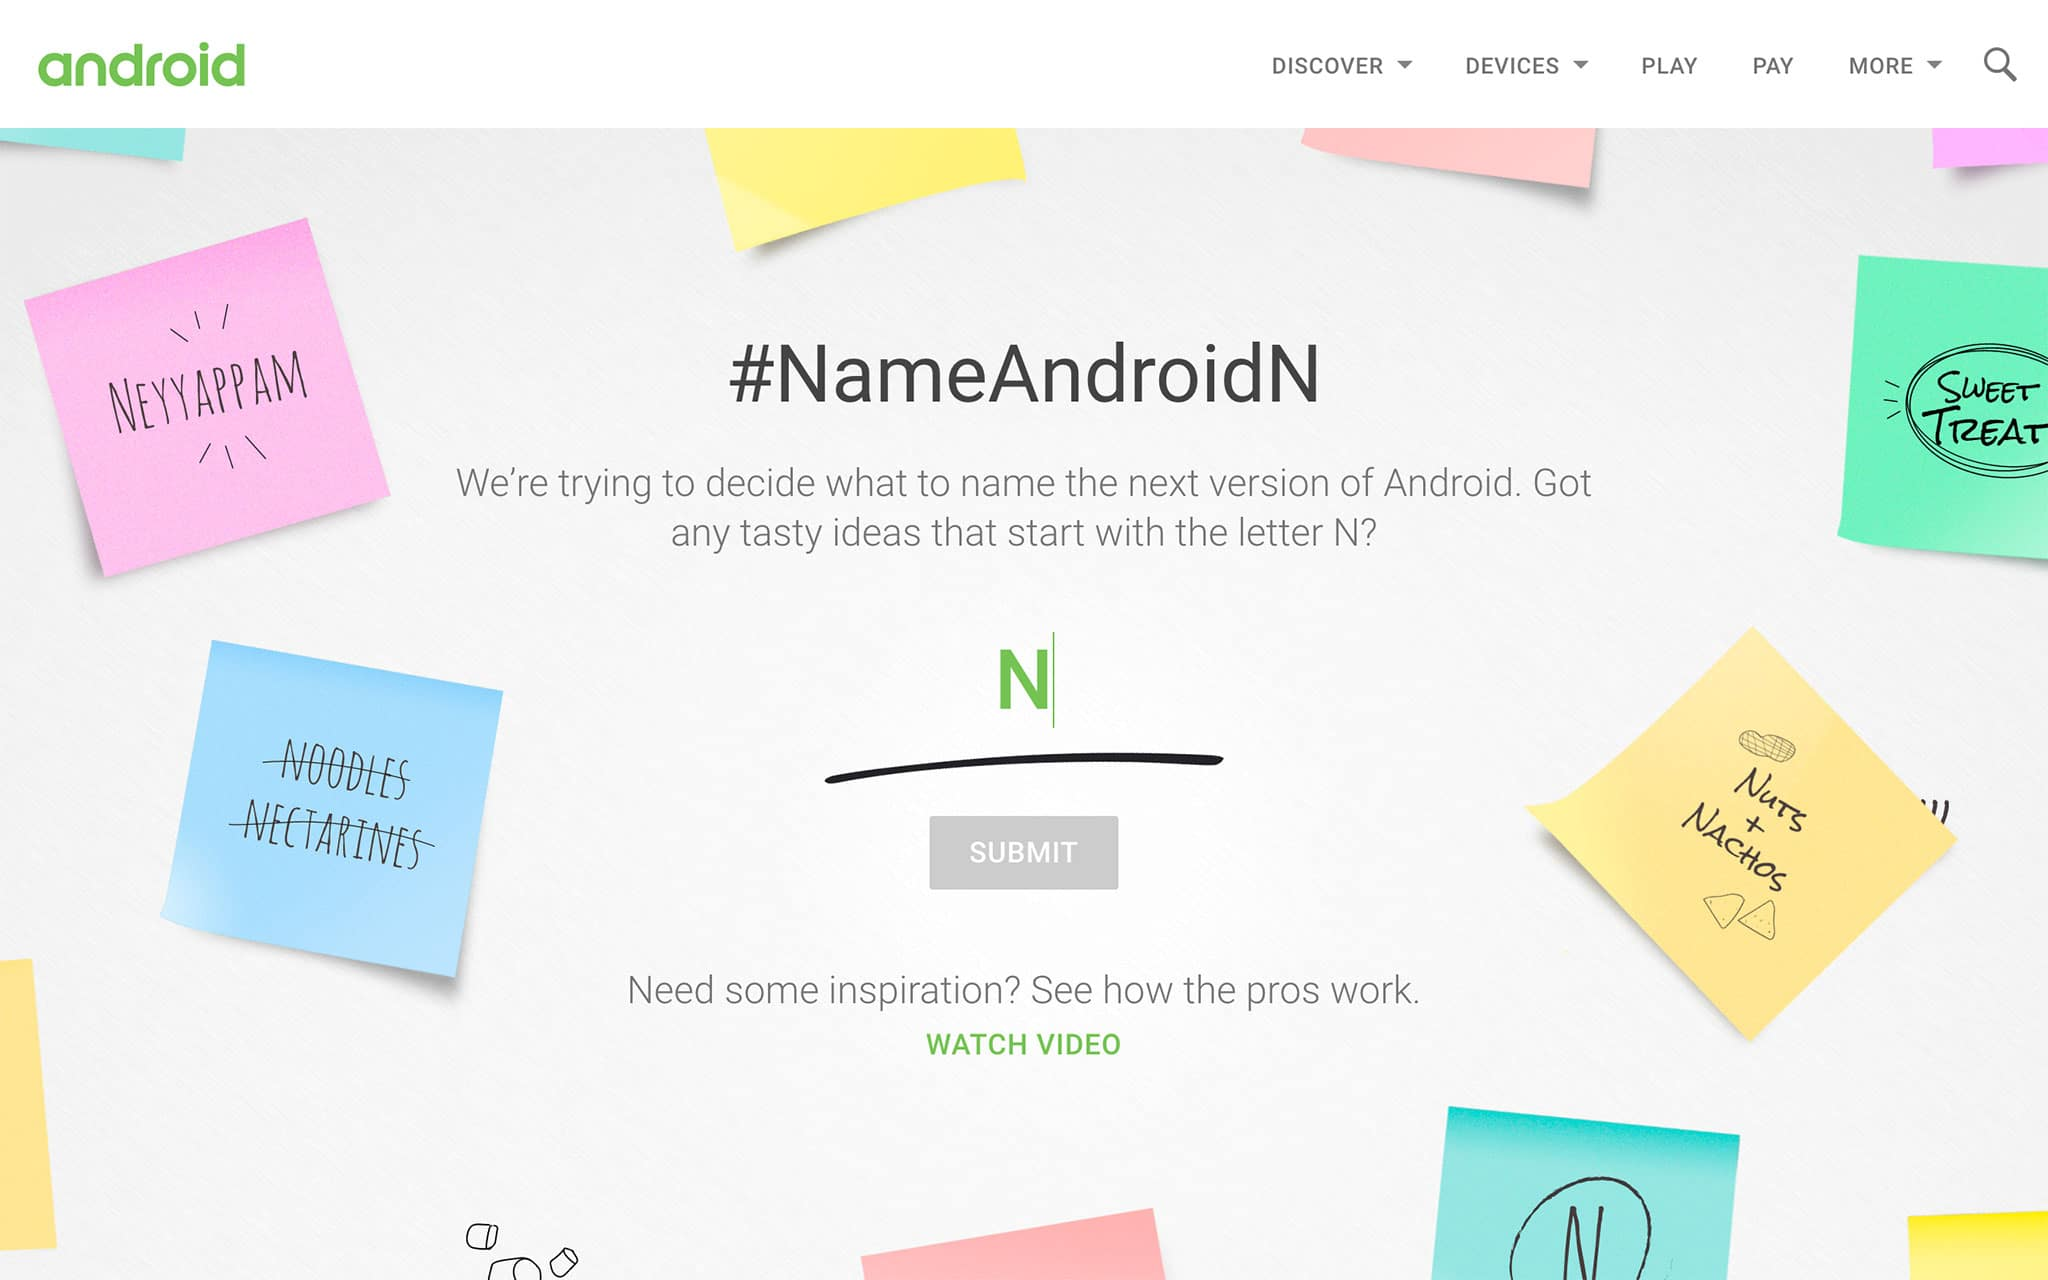 android-n-submit-a-name